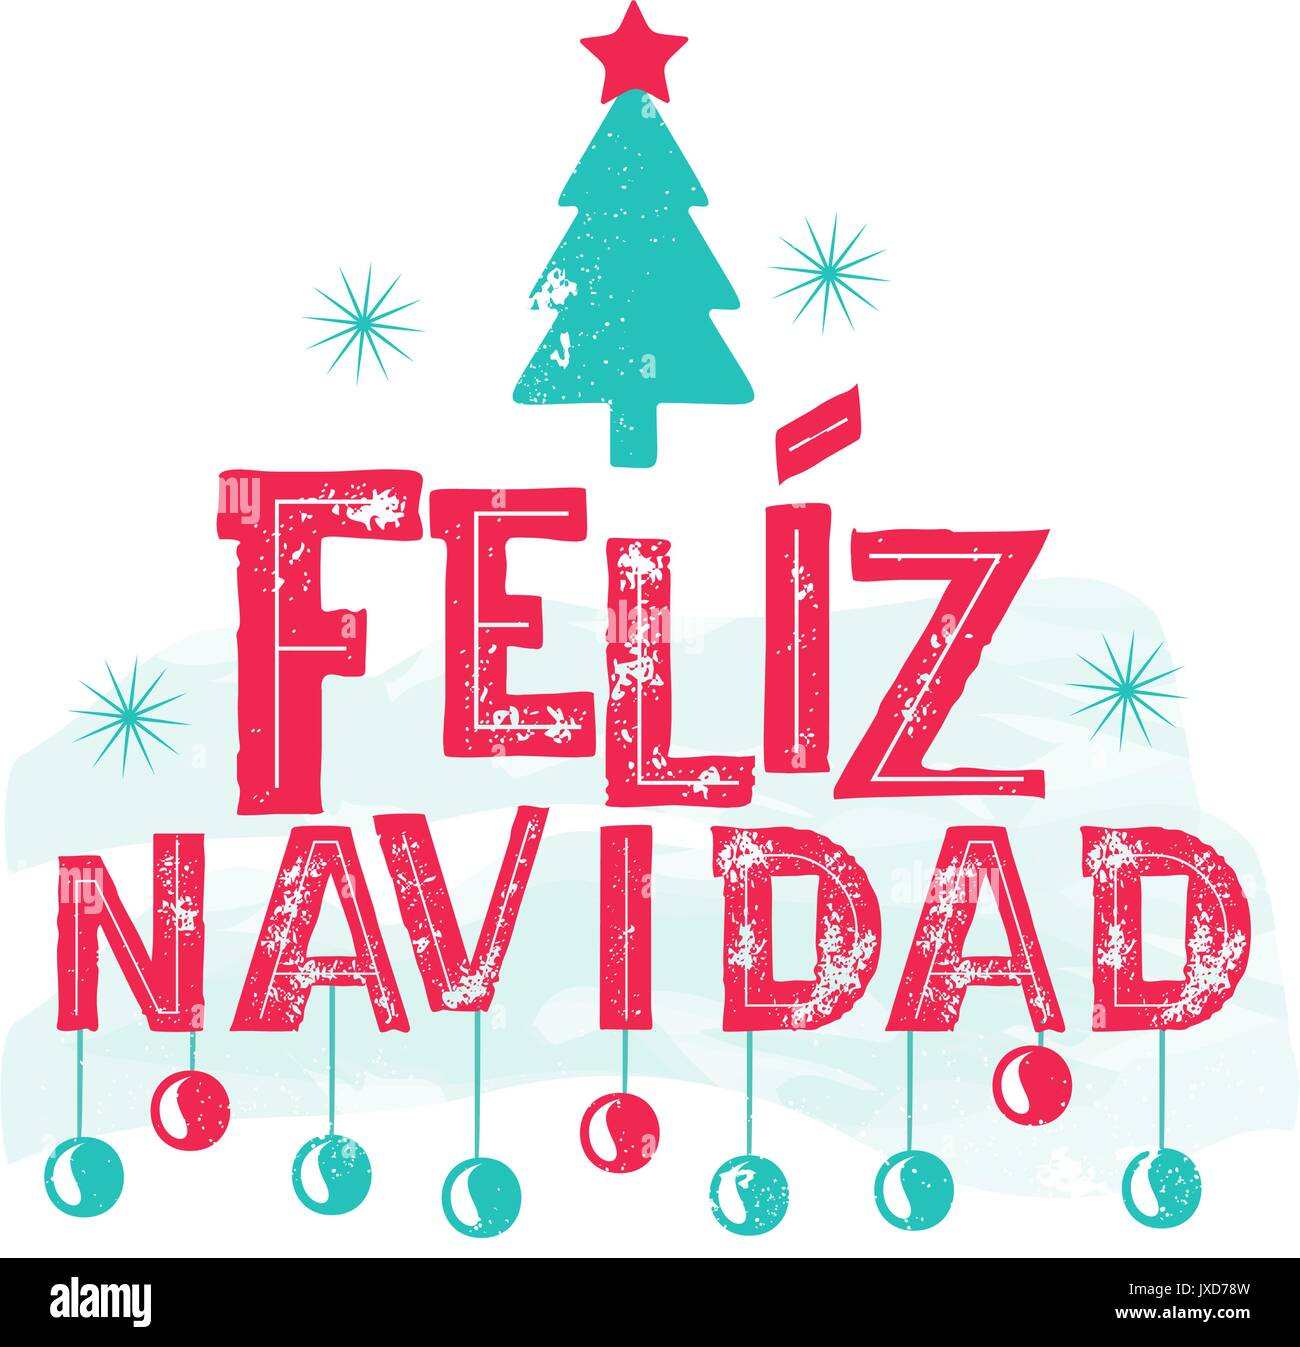 Christmas Spanish.Feliz Navidad Merry Christmas Spanish Language Stock